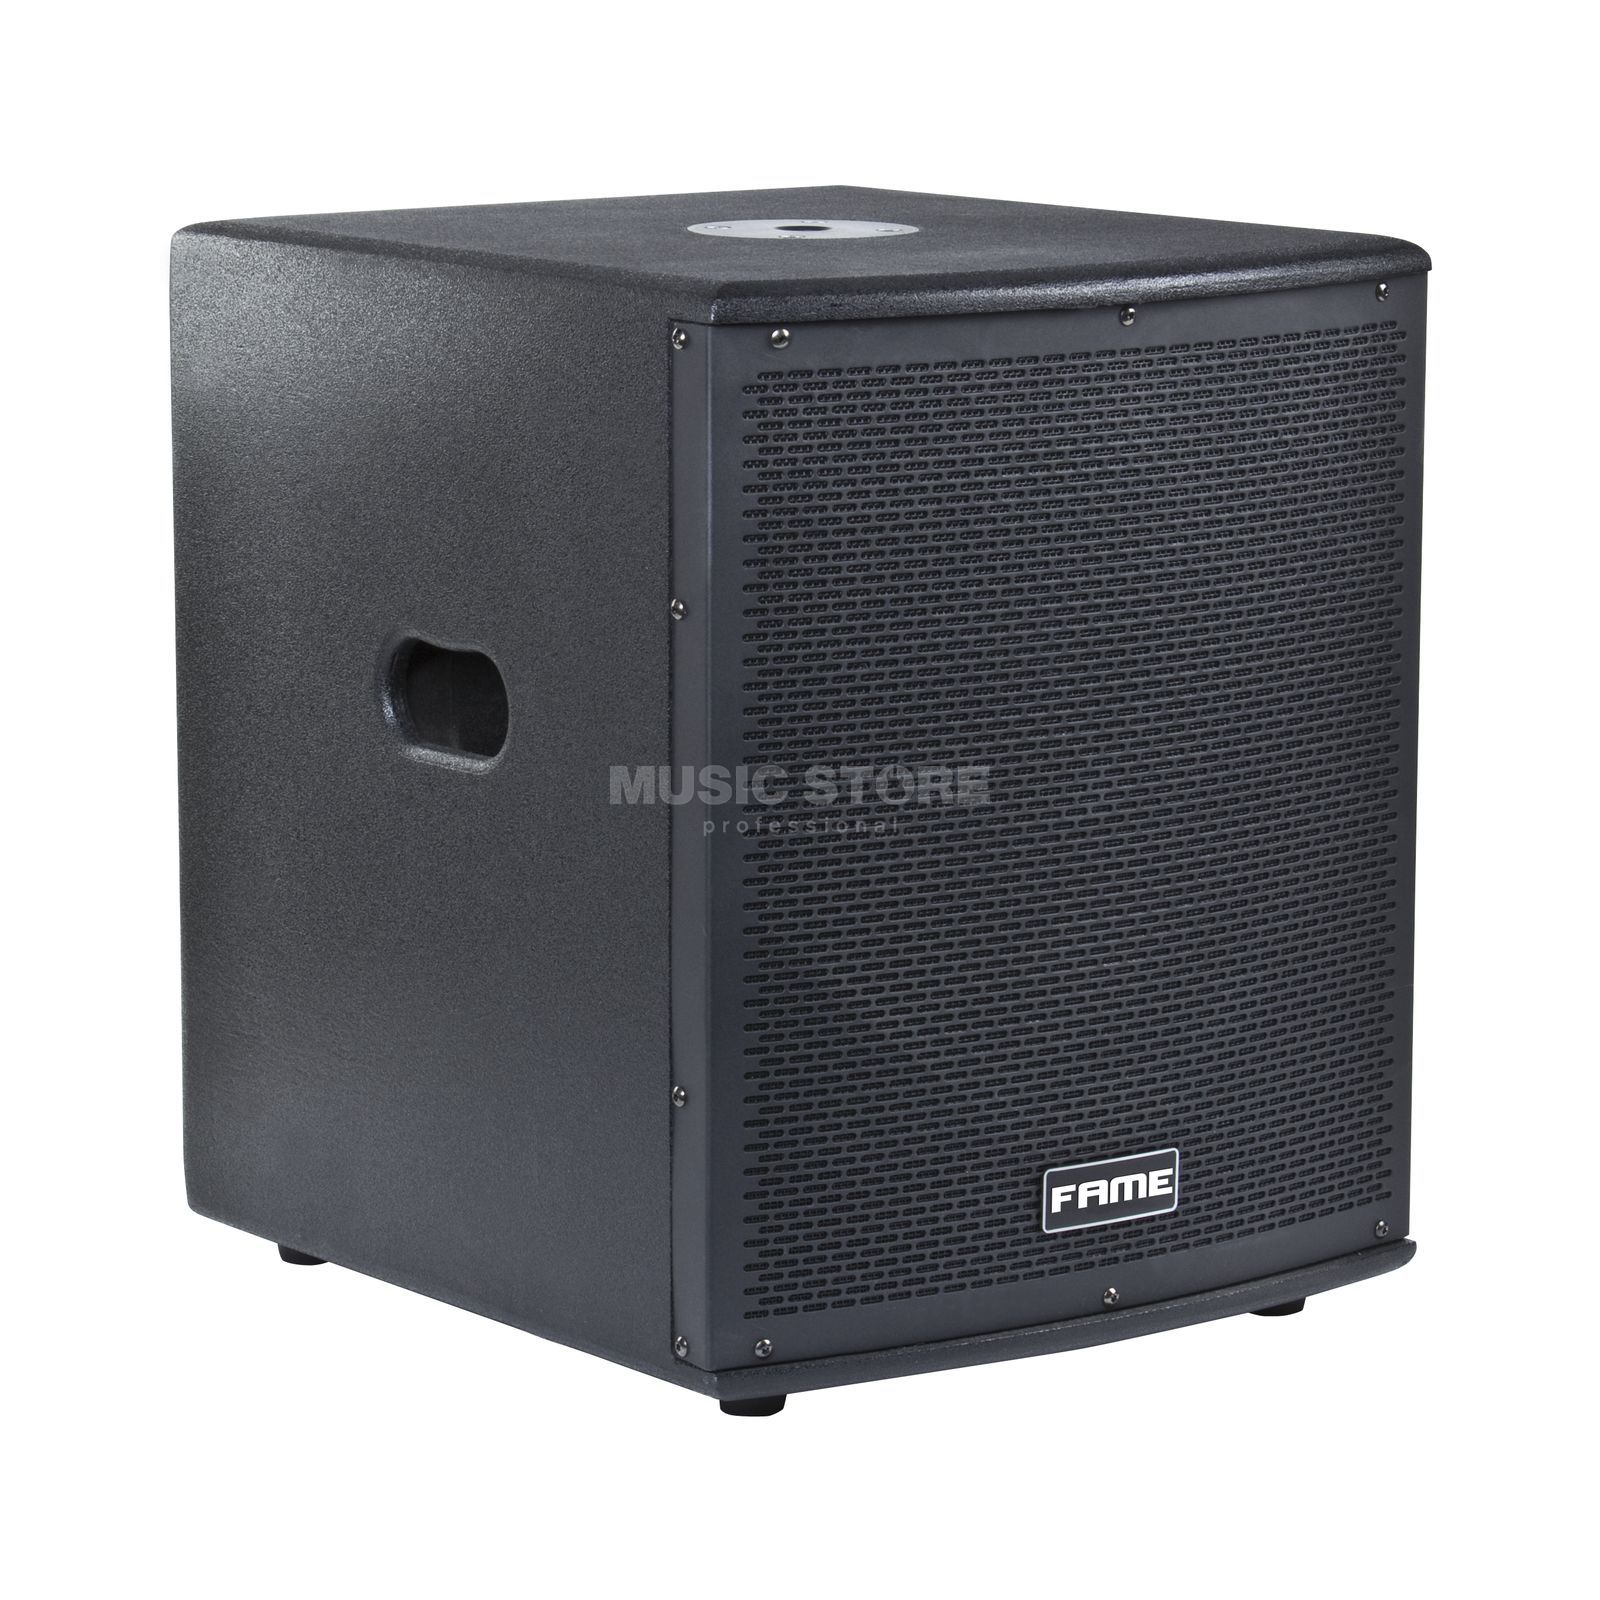 "Fame audio Challenger SUB 12A active 12"" Subwoofer, 450W Productafbeelding"